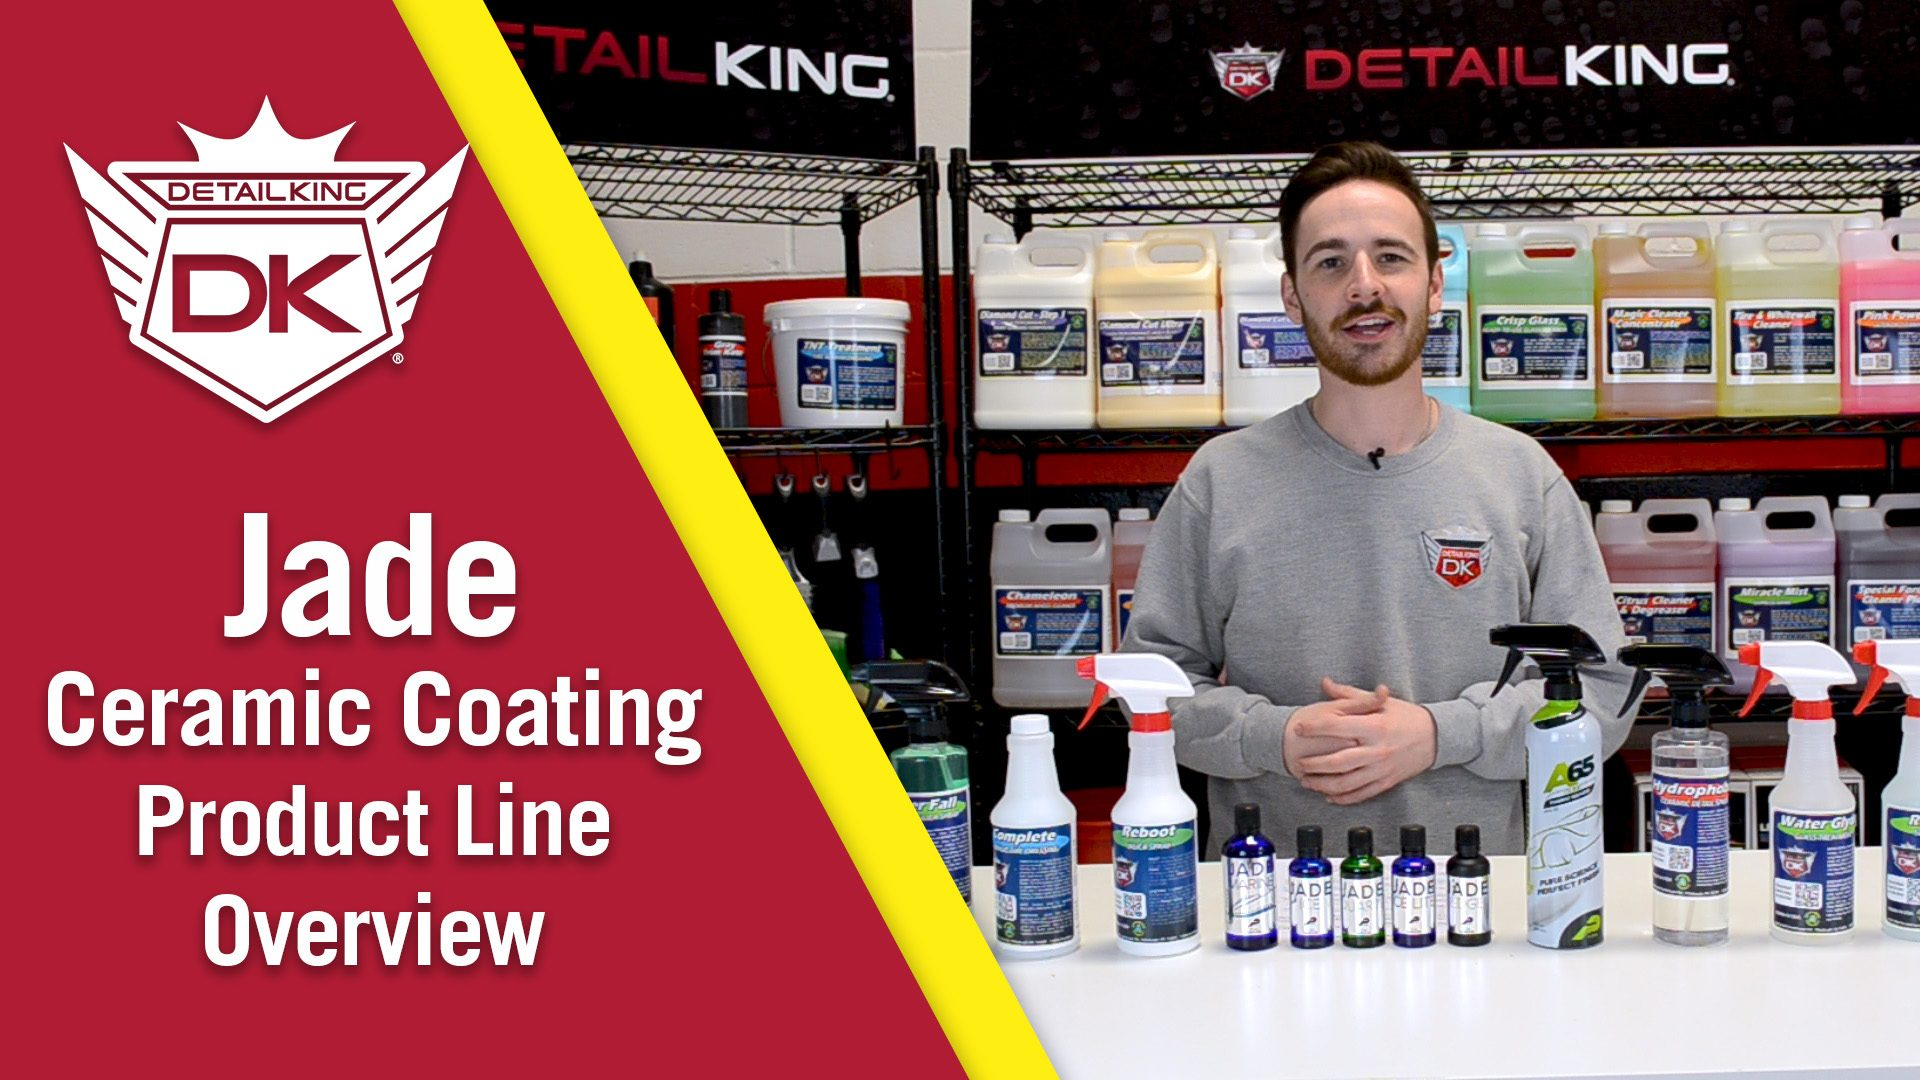 Jade Ceramic Coating Product Line Overview